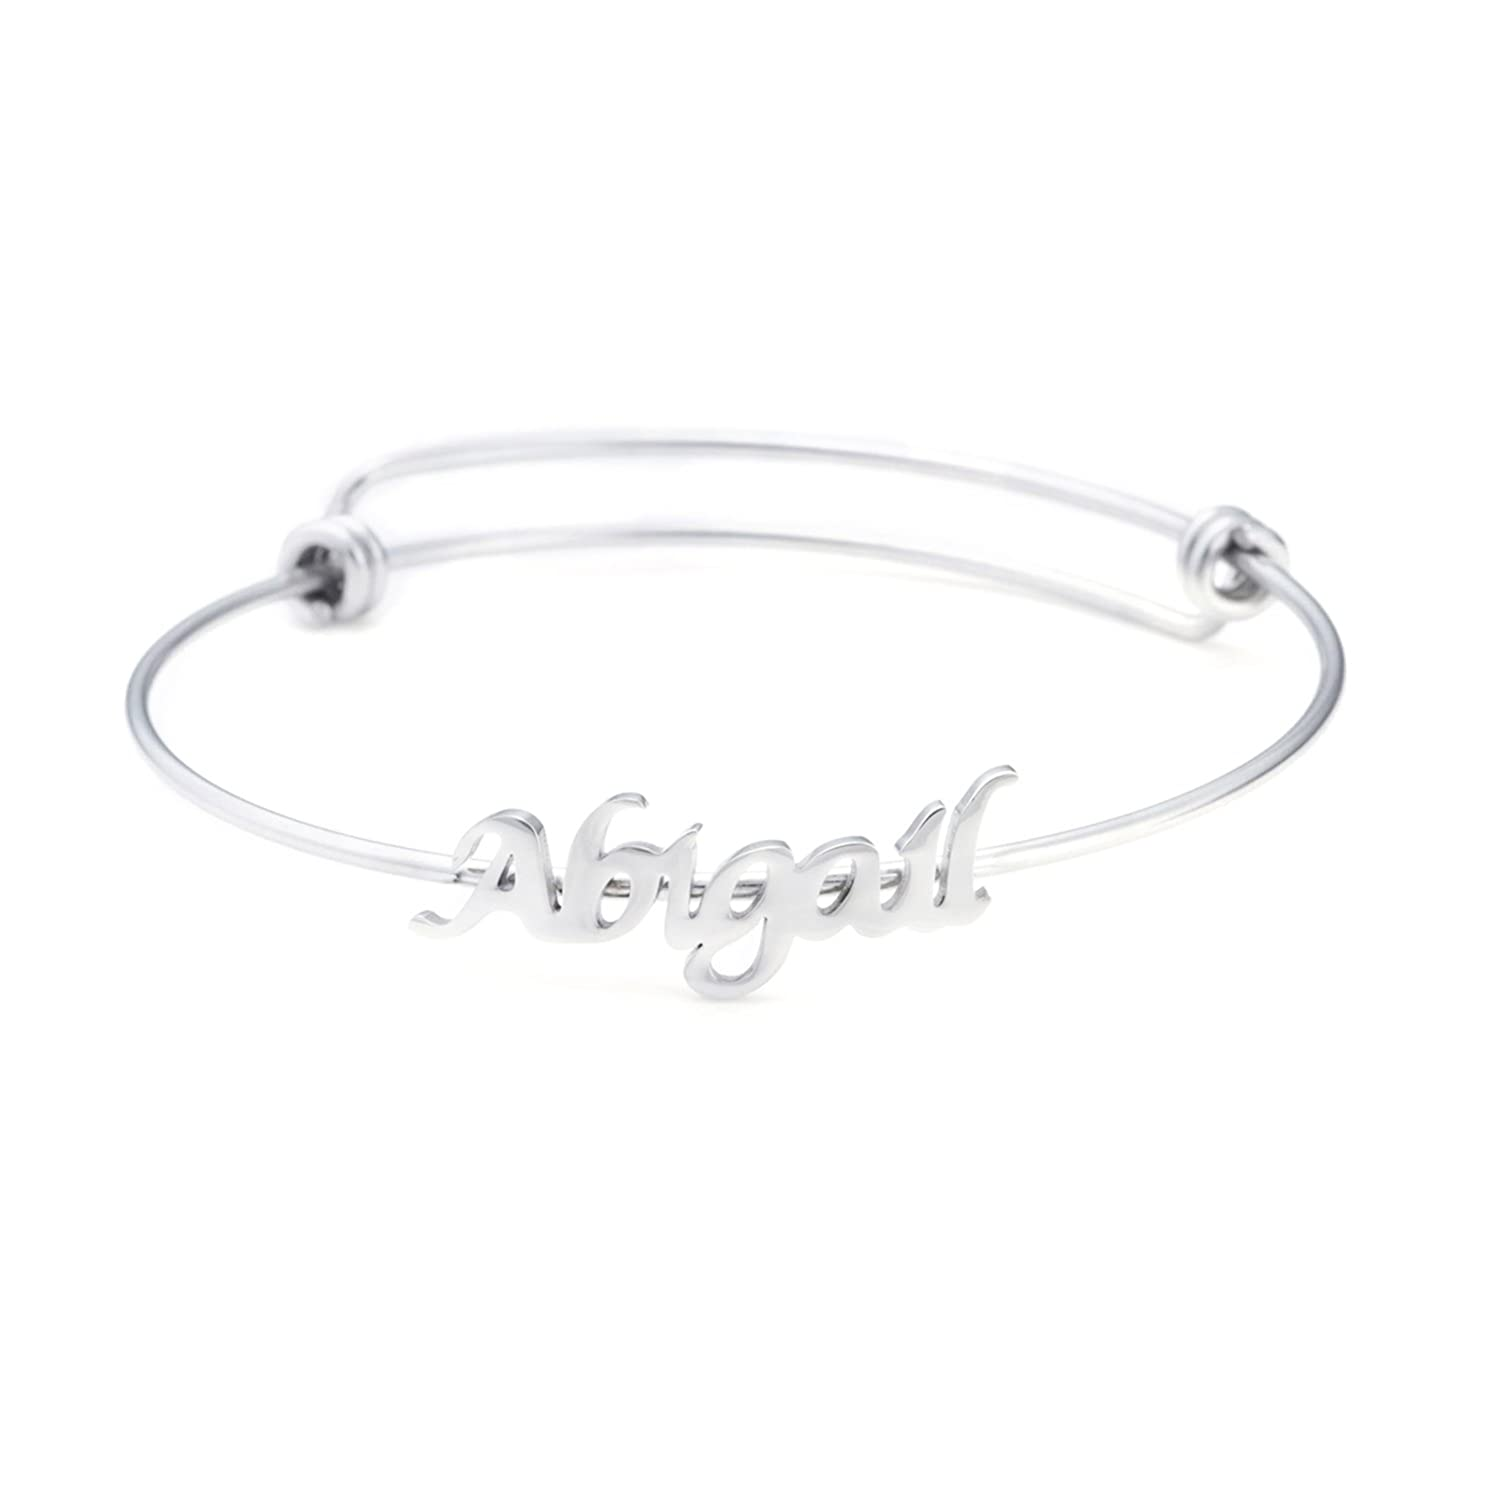 137642de151c3 Name Bangle for Teen Girls Personalized Name Bracelets Jewelry Gift for  Friends Women